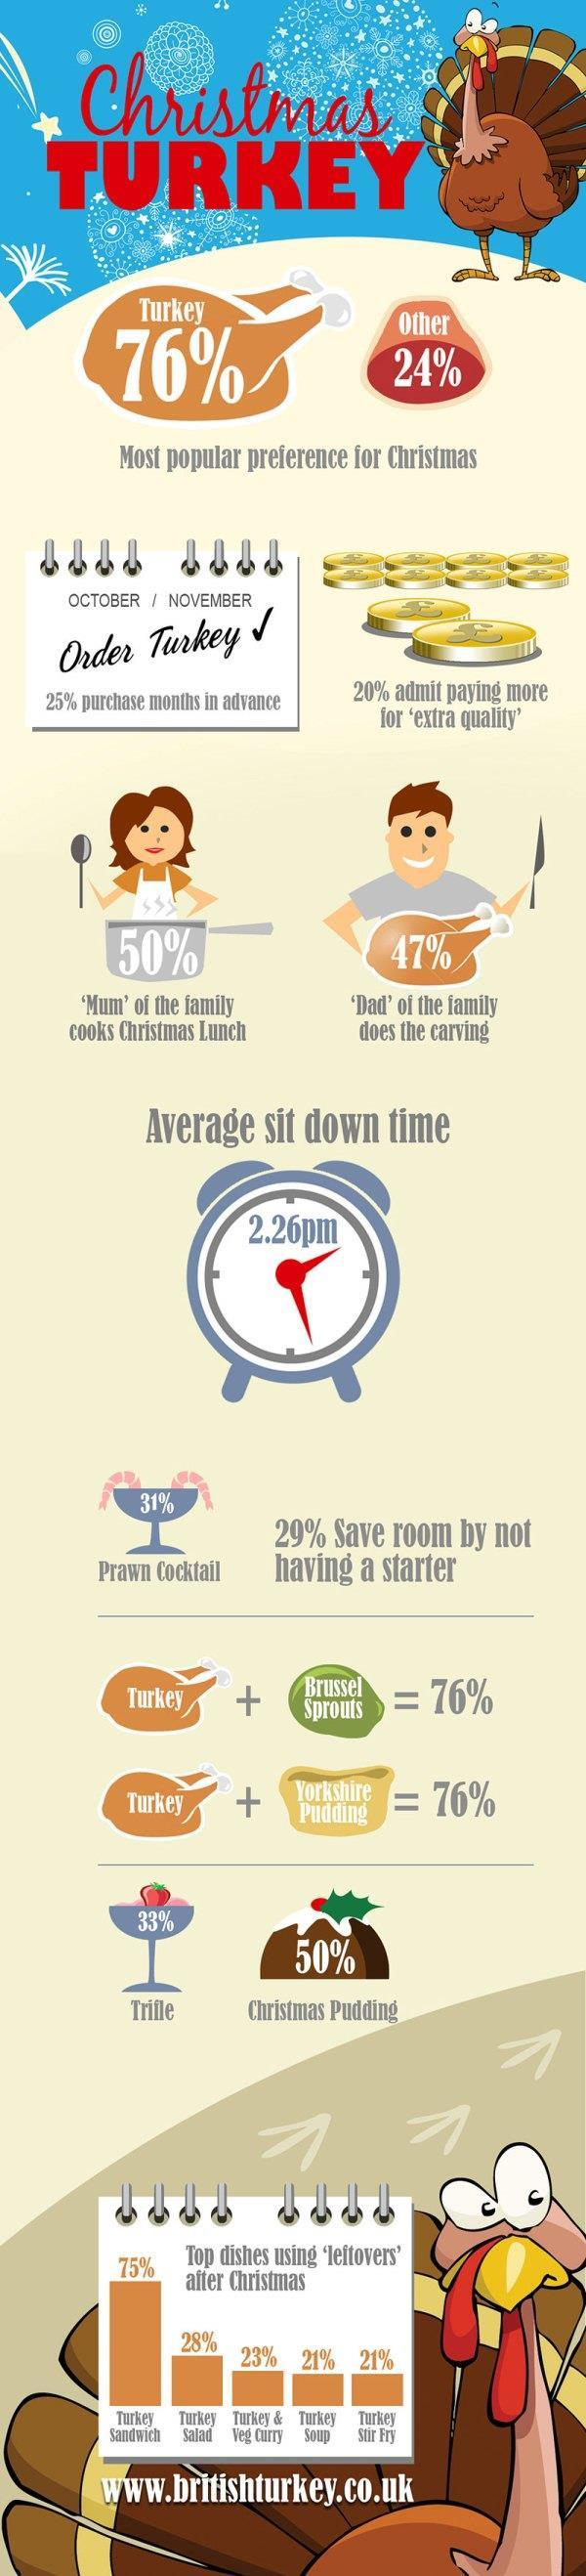 Infographic Christmas Turkey Facts